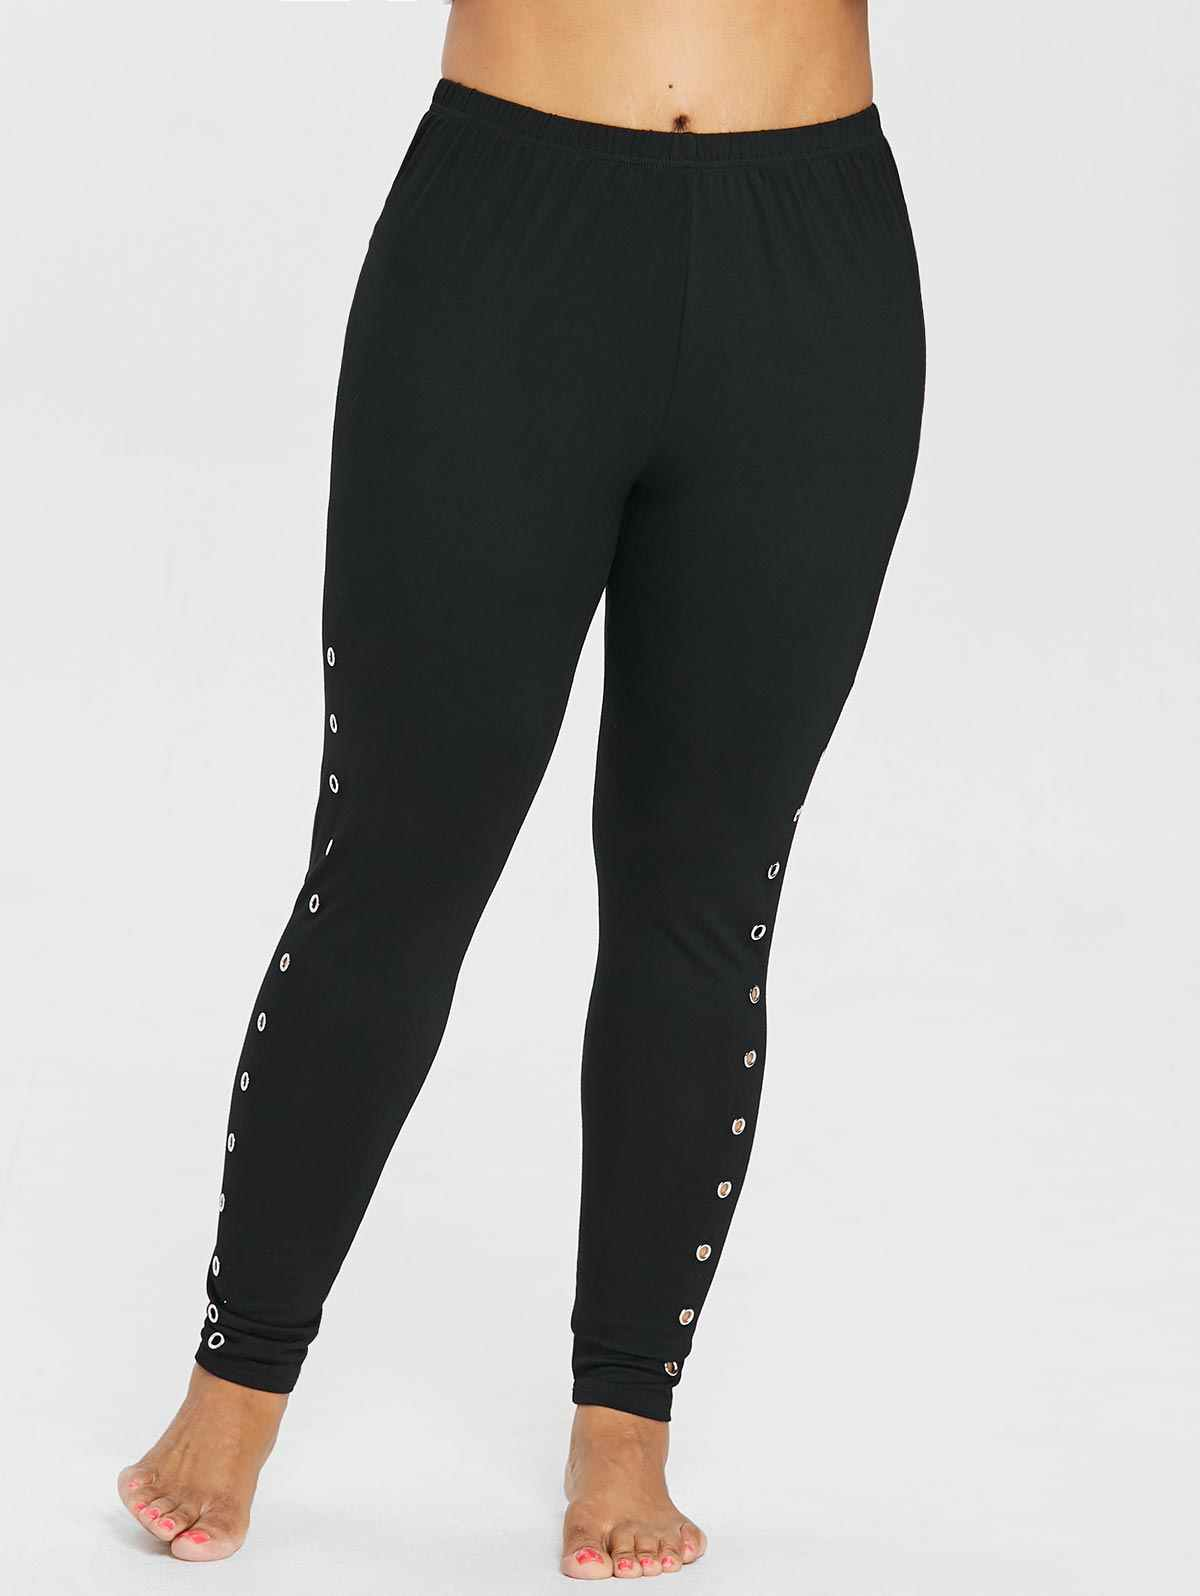 5478801a56 Kenancy Women Casual Plus Size Embellished Grommets Side High Waisted  Skinny Leggings Black Trousers Laies Pants Big Size 5XL